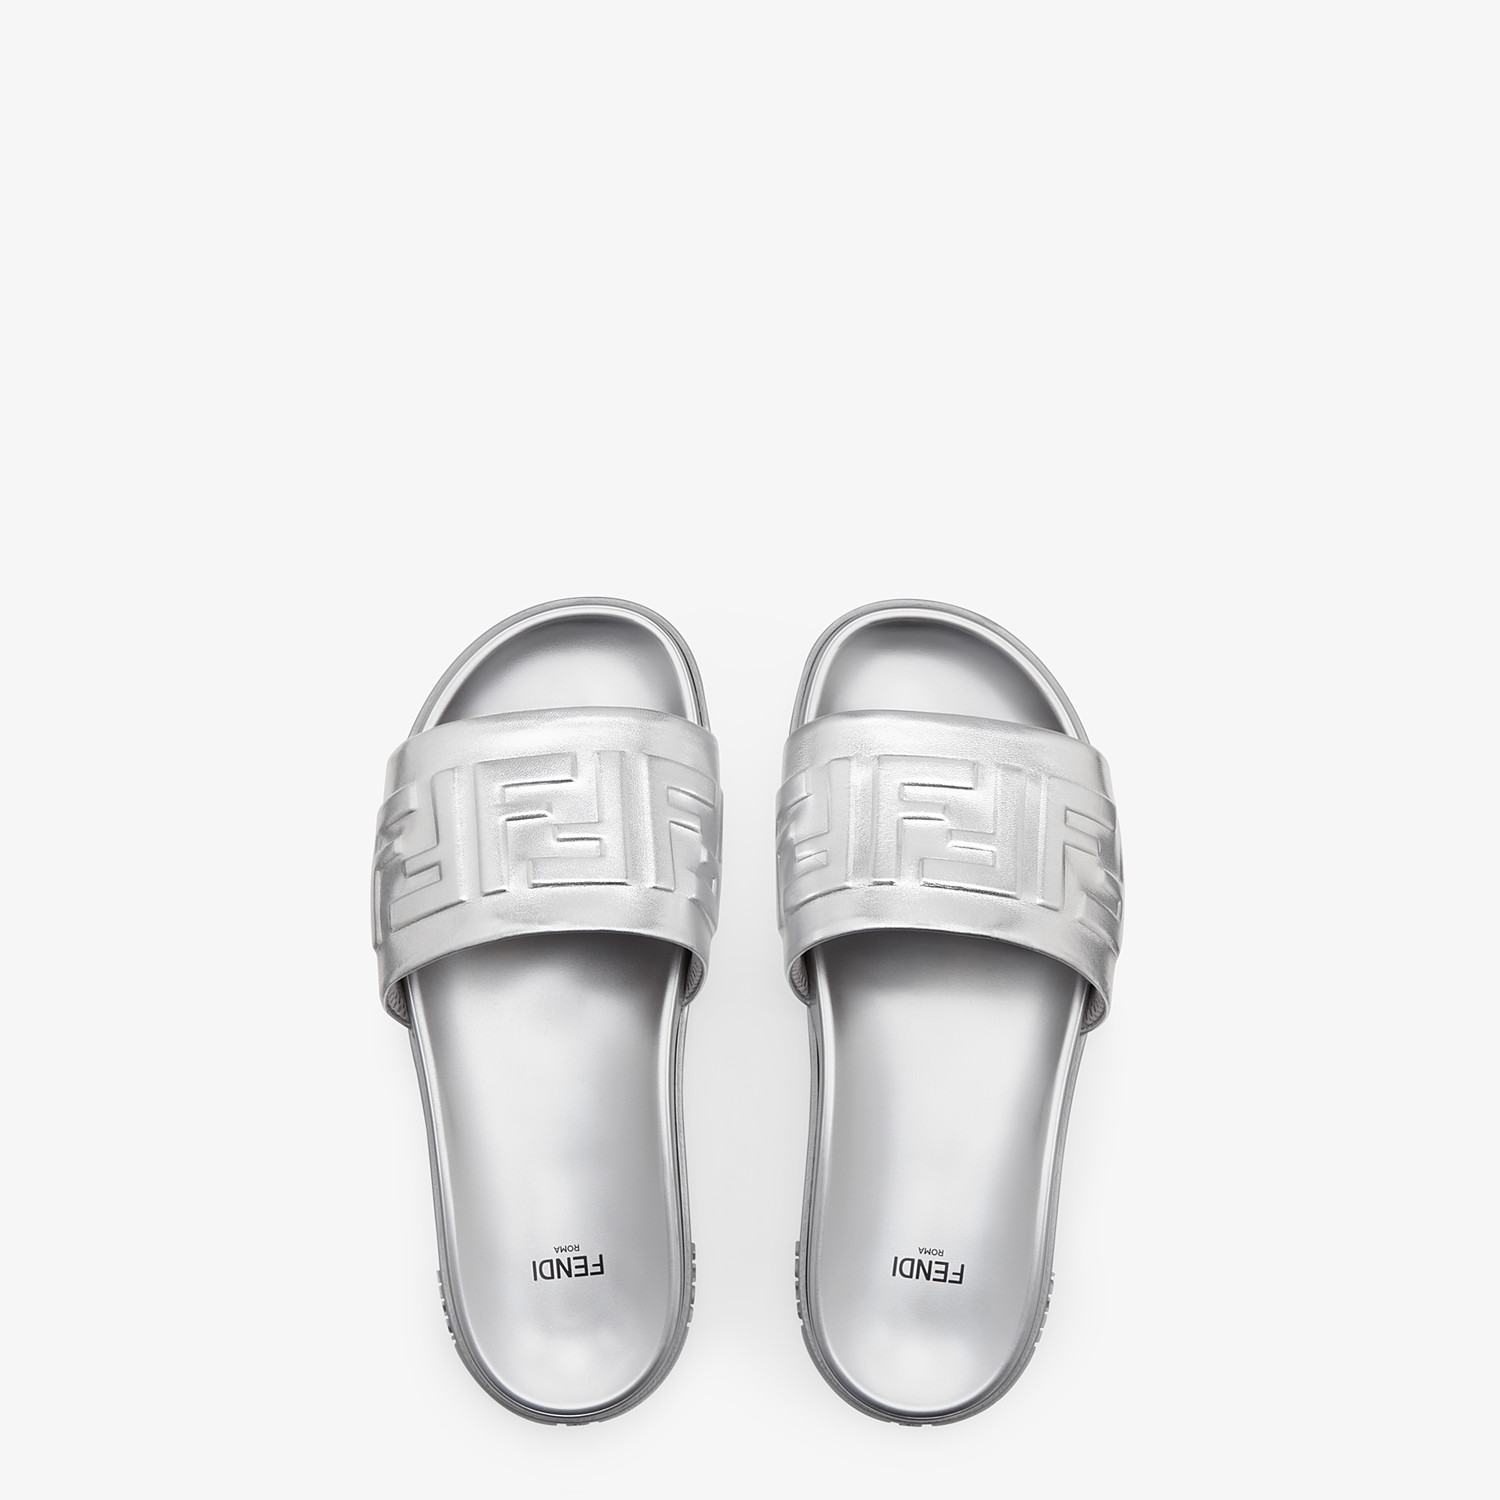 FENDI SANDALS - Silver nappa leather slides - view 4 detail